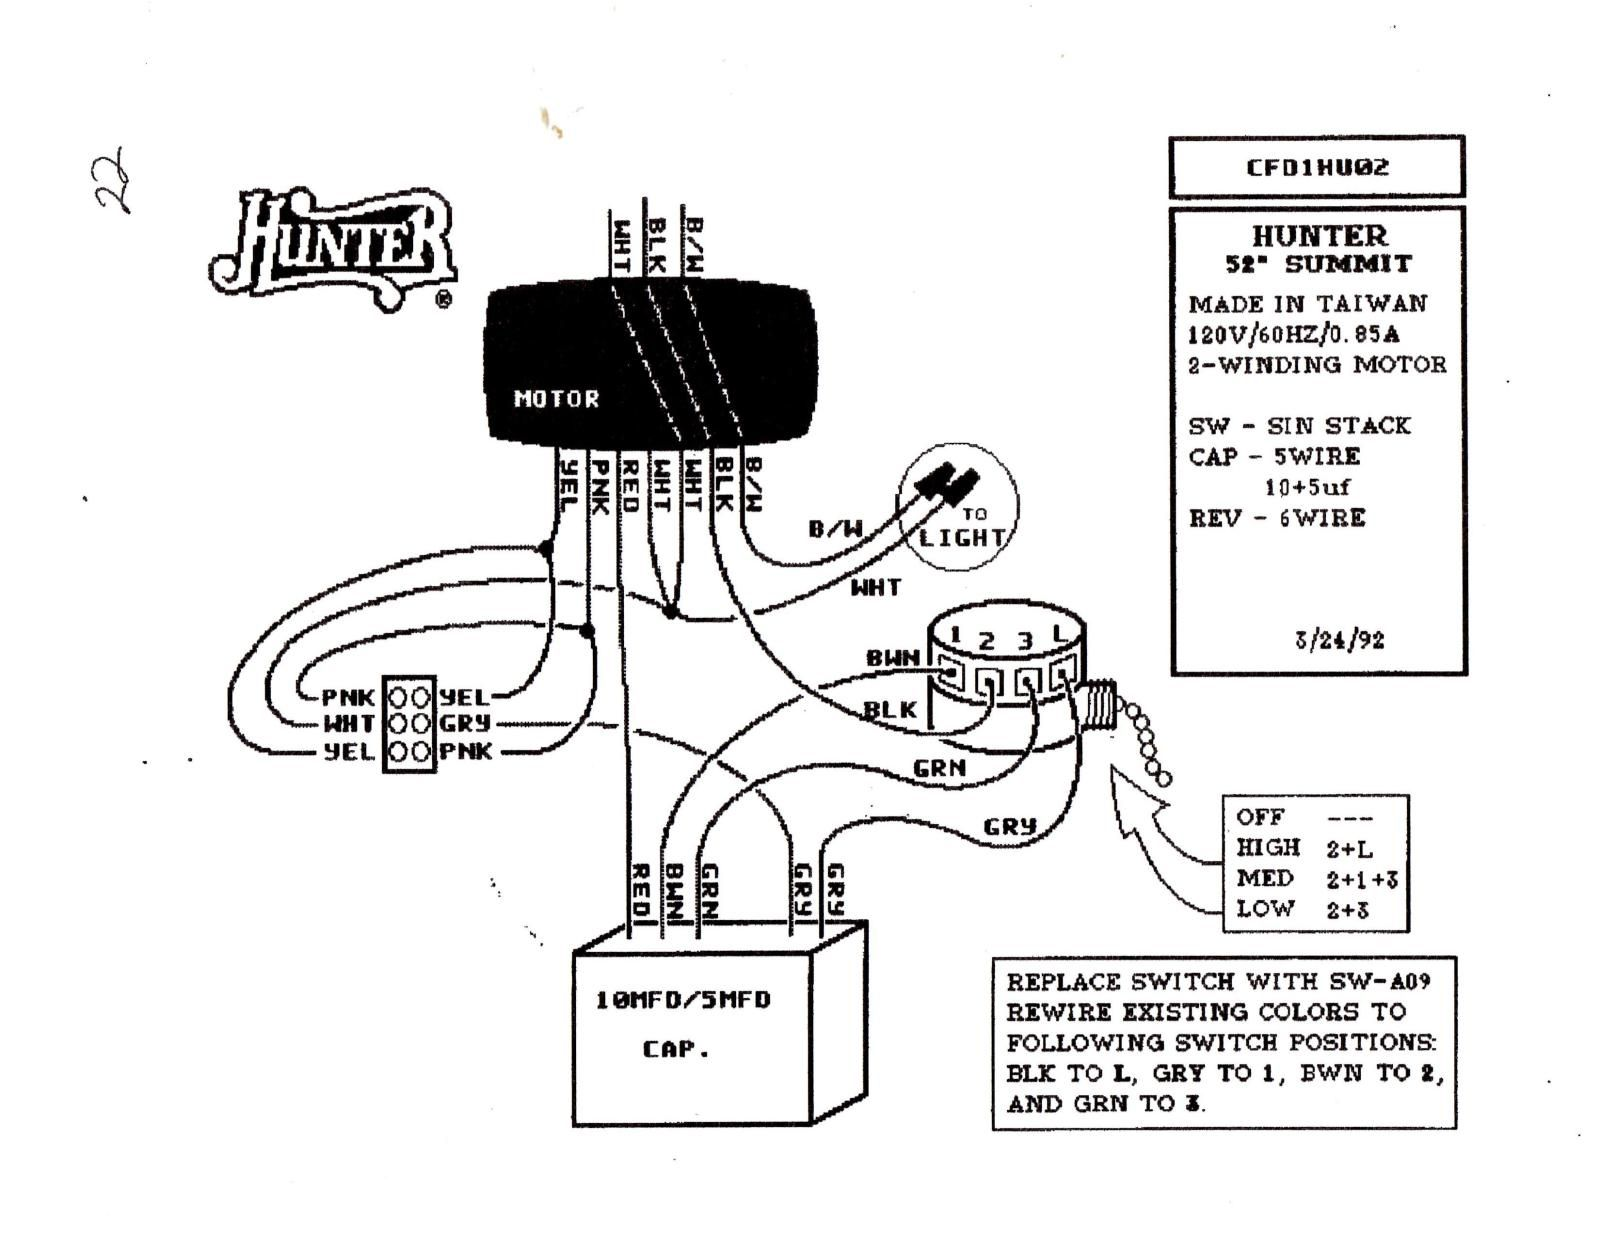 Hunter Ceiling Fan Wiring Diagram  Hunter Ceiling Fan And Light Control Wiring Diagram Gallery